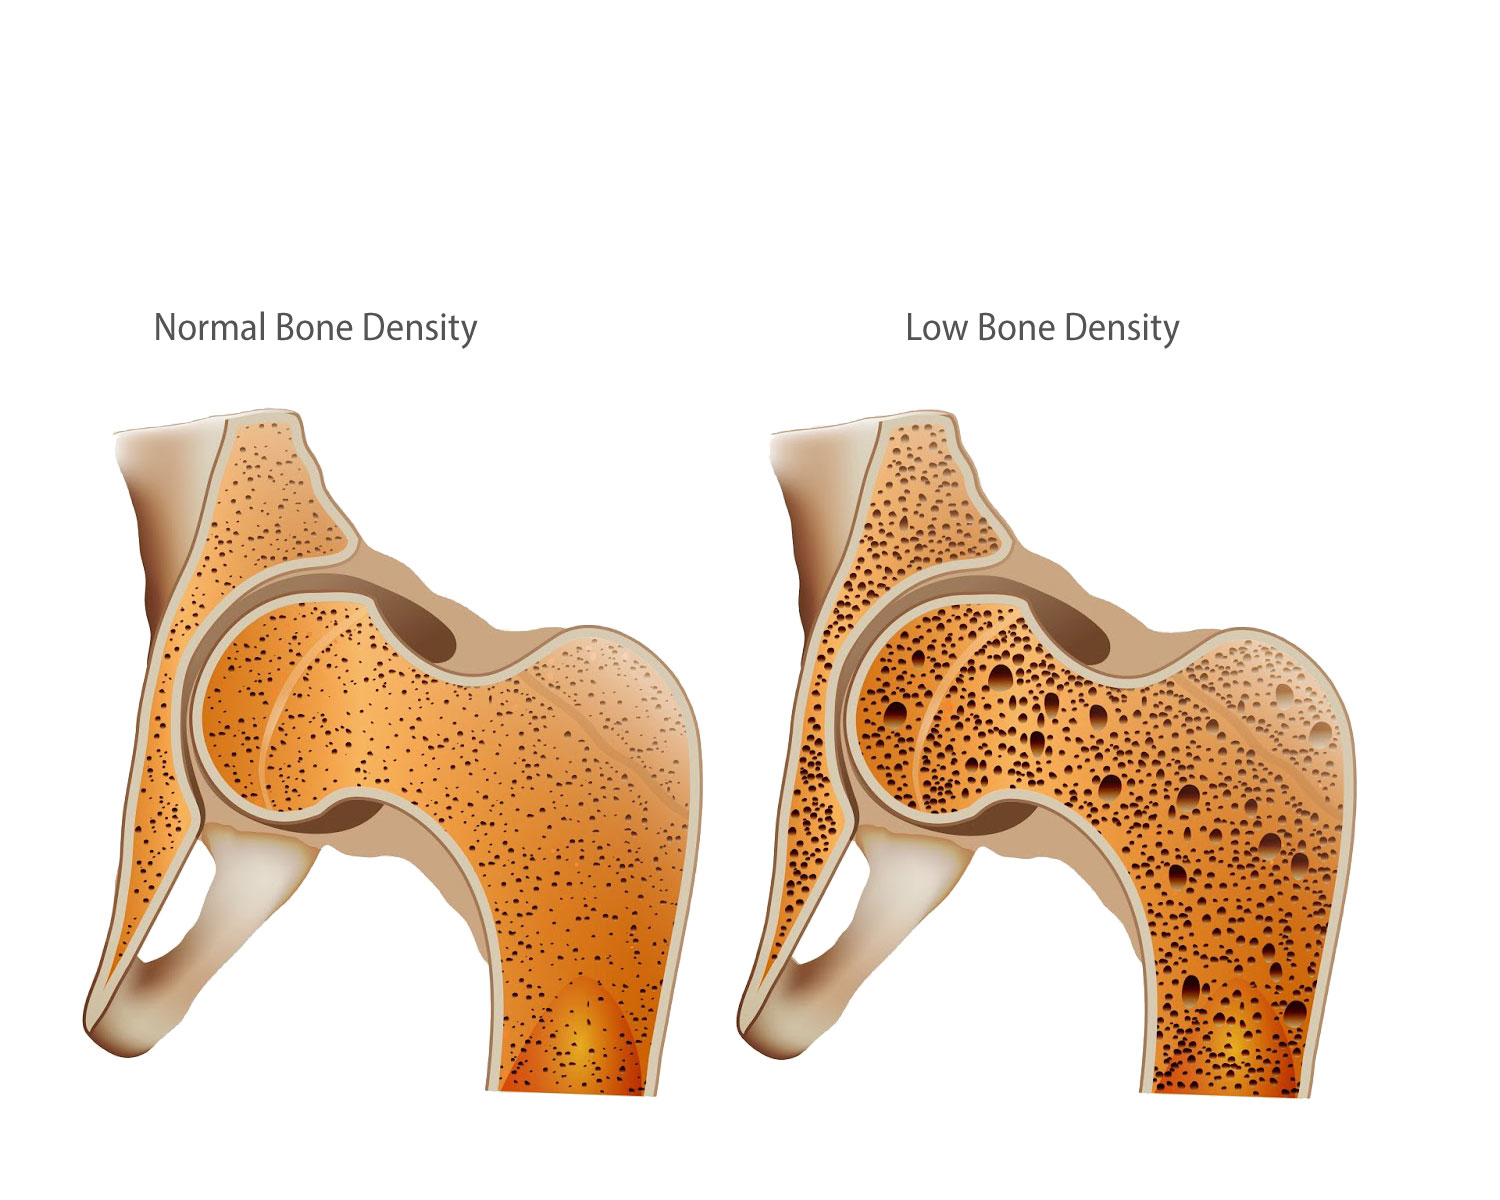 A graphic depiction of normal and low bone density